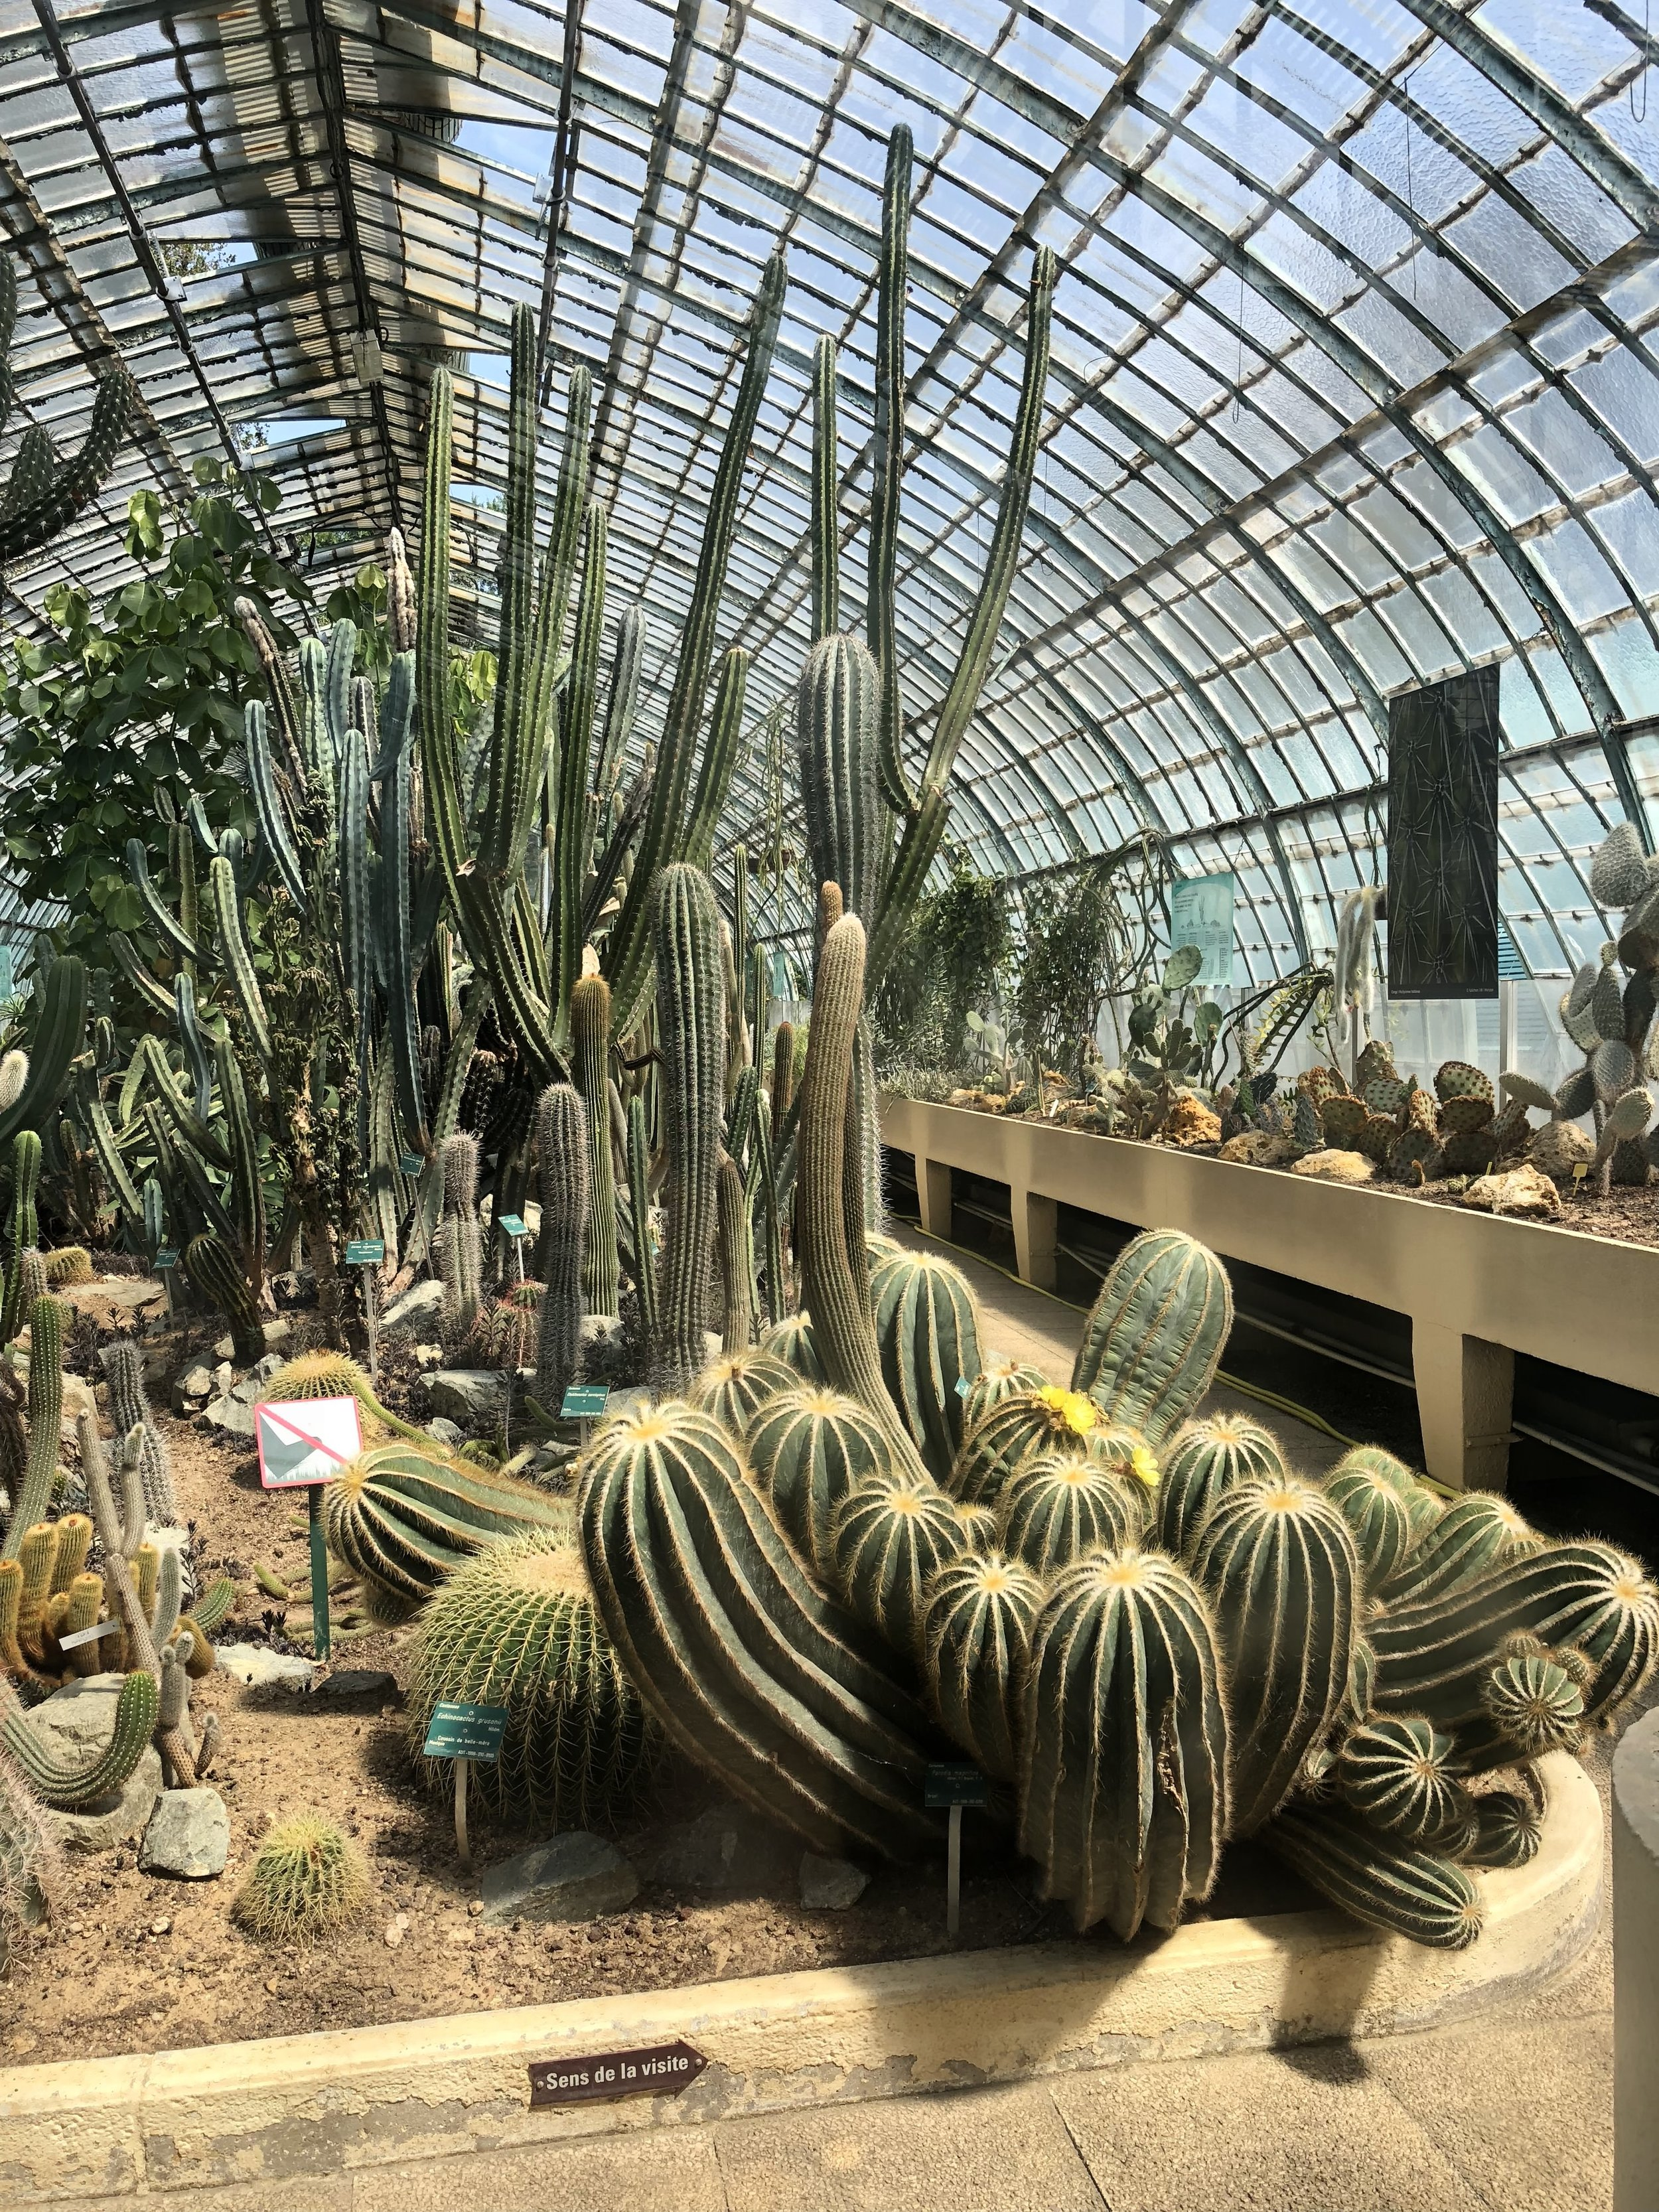 A desert greenhouse at the Serre d'Auteuil gardens